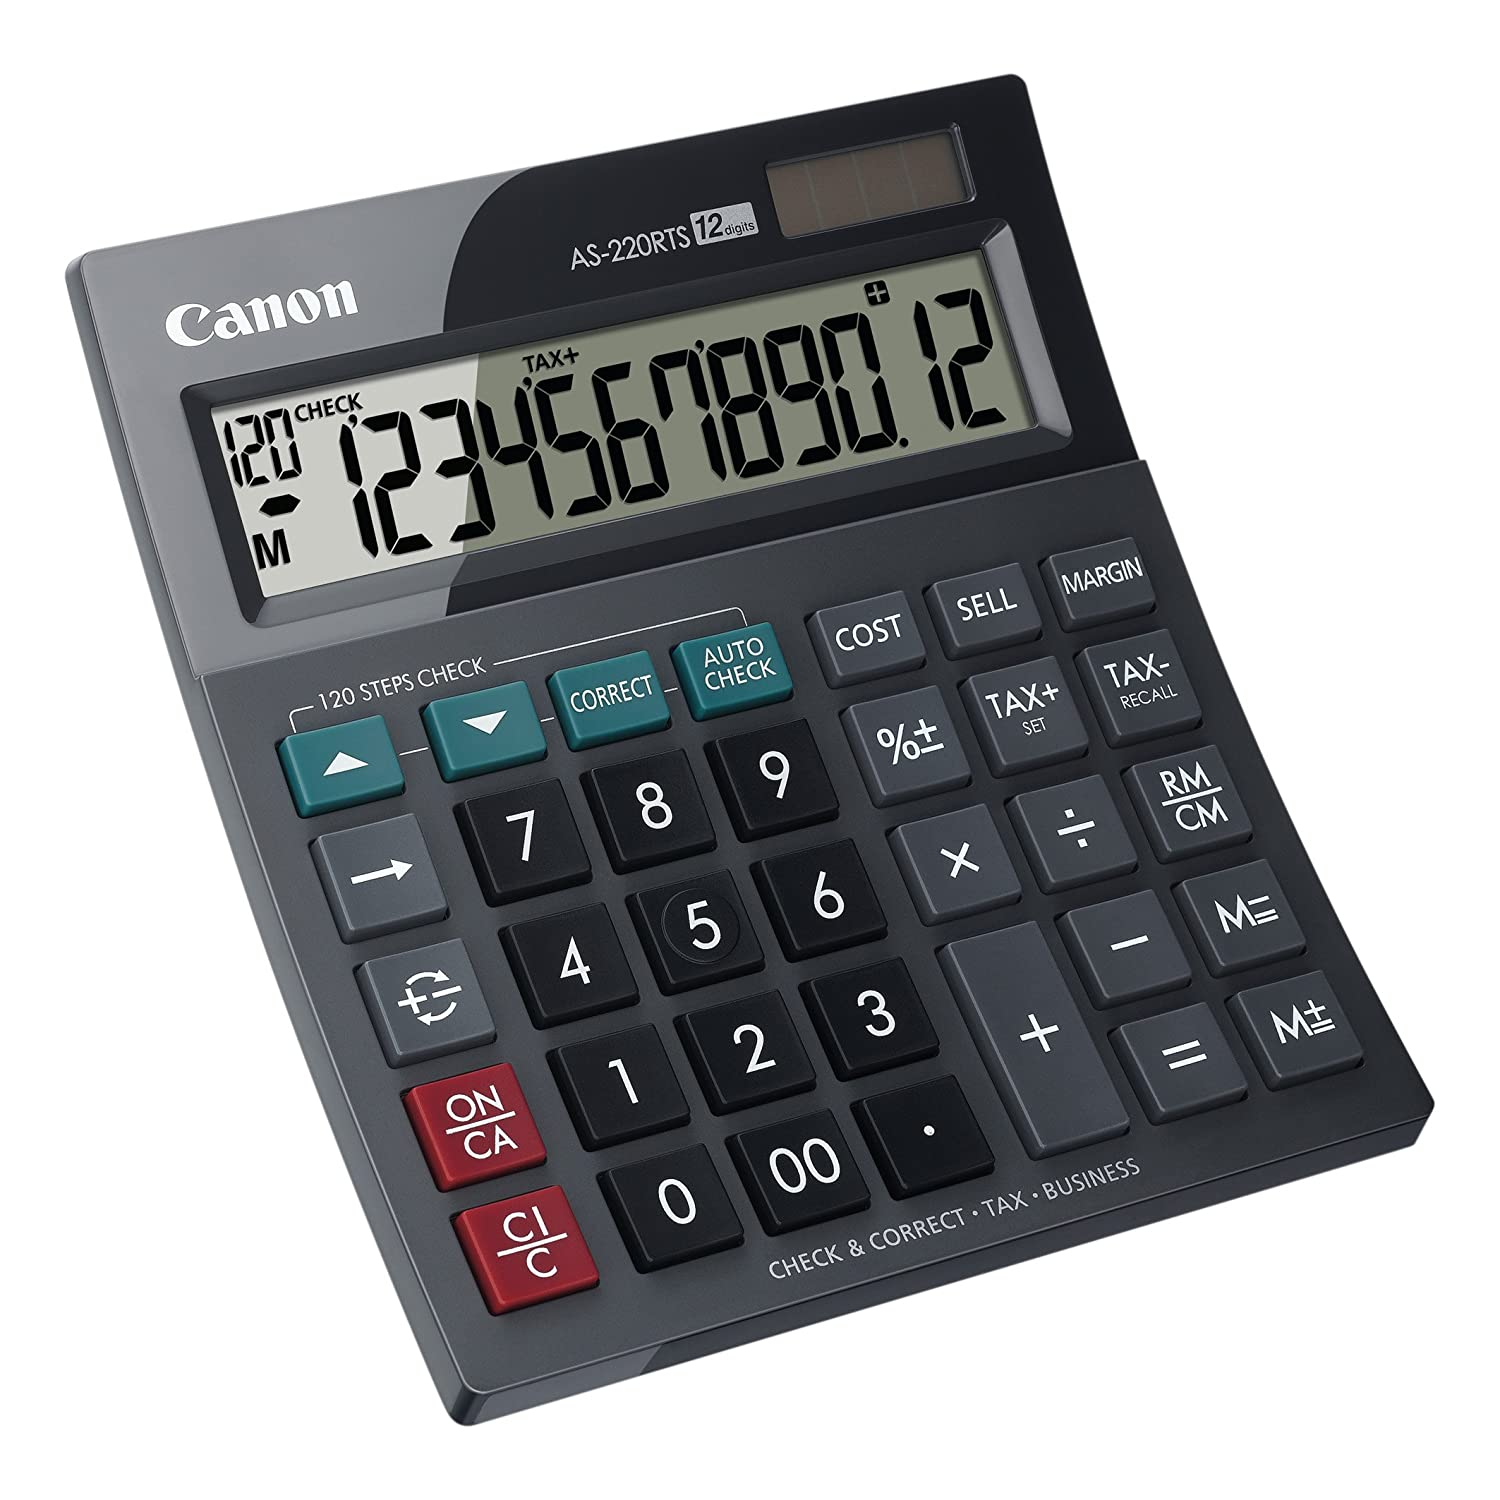 Tilted Display Battery Canon AS 220 RTS Professional//Desk Display Calculator Solar Energy Driven